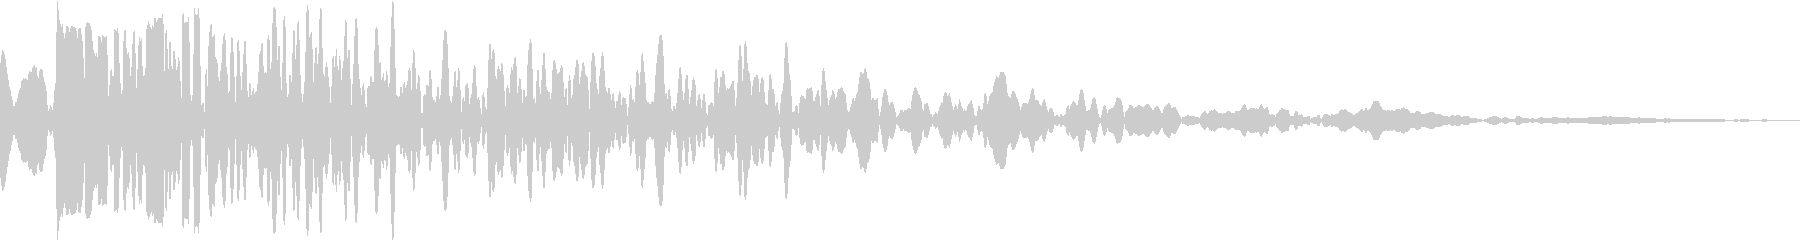 DANK (Sound to strike heavy trees on the floor)'s unreproduced waveform